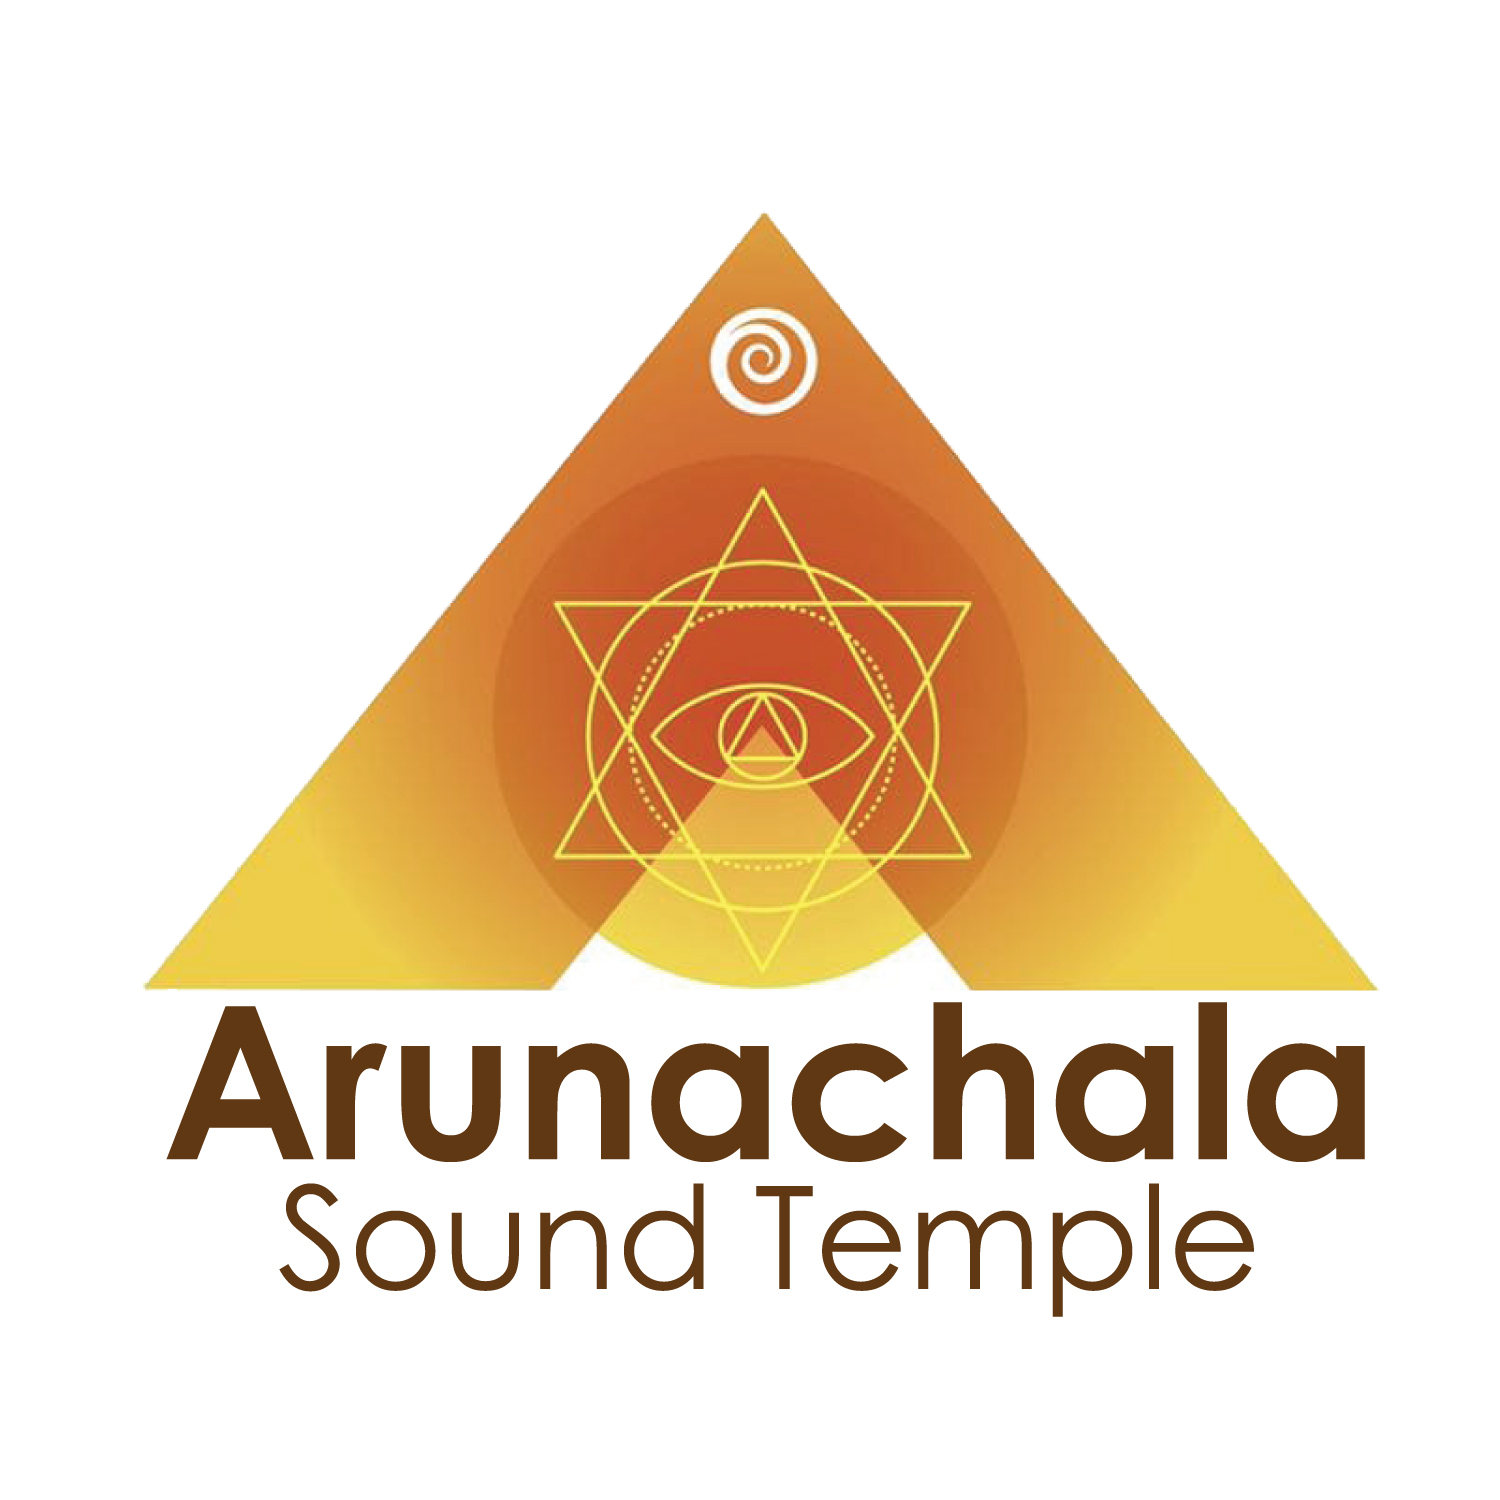 Arunachala Sound Temple